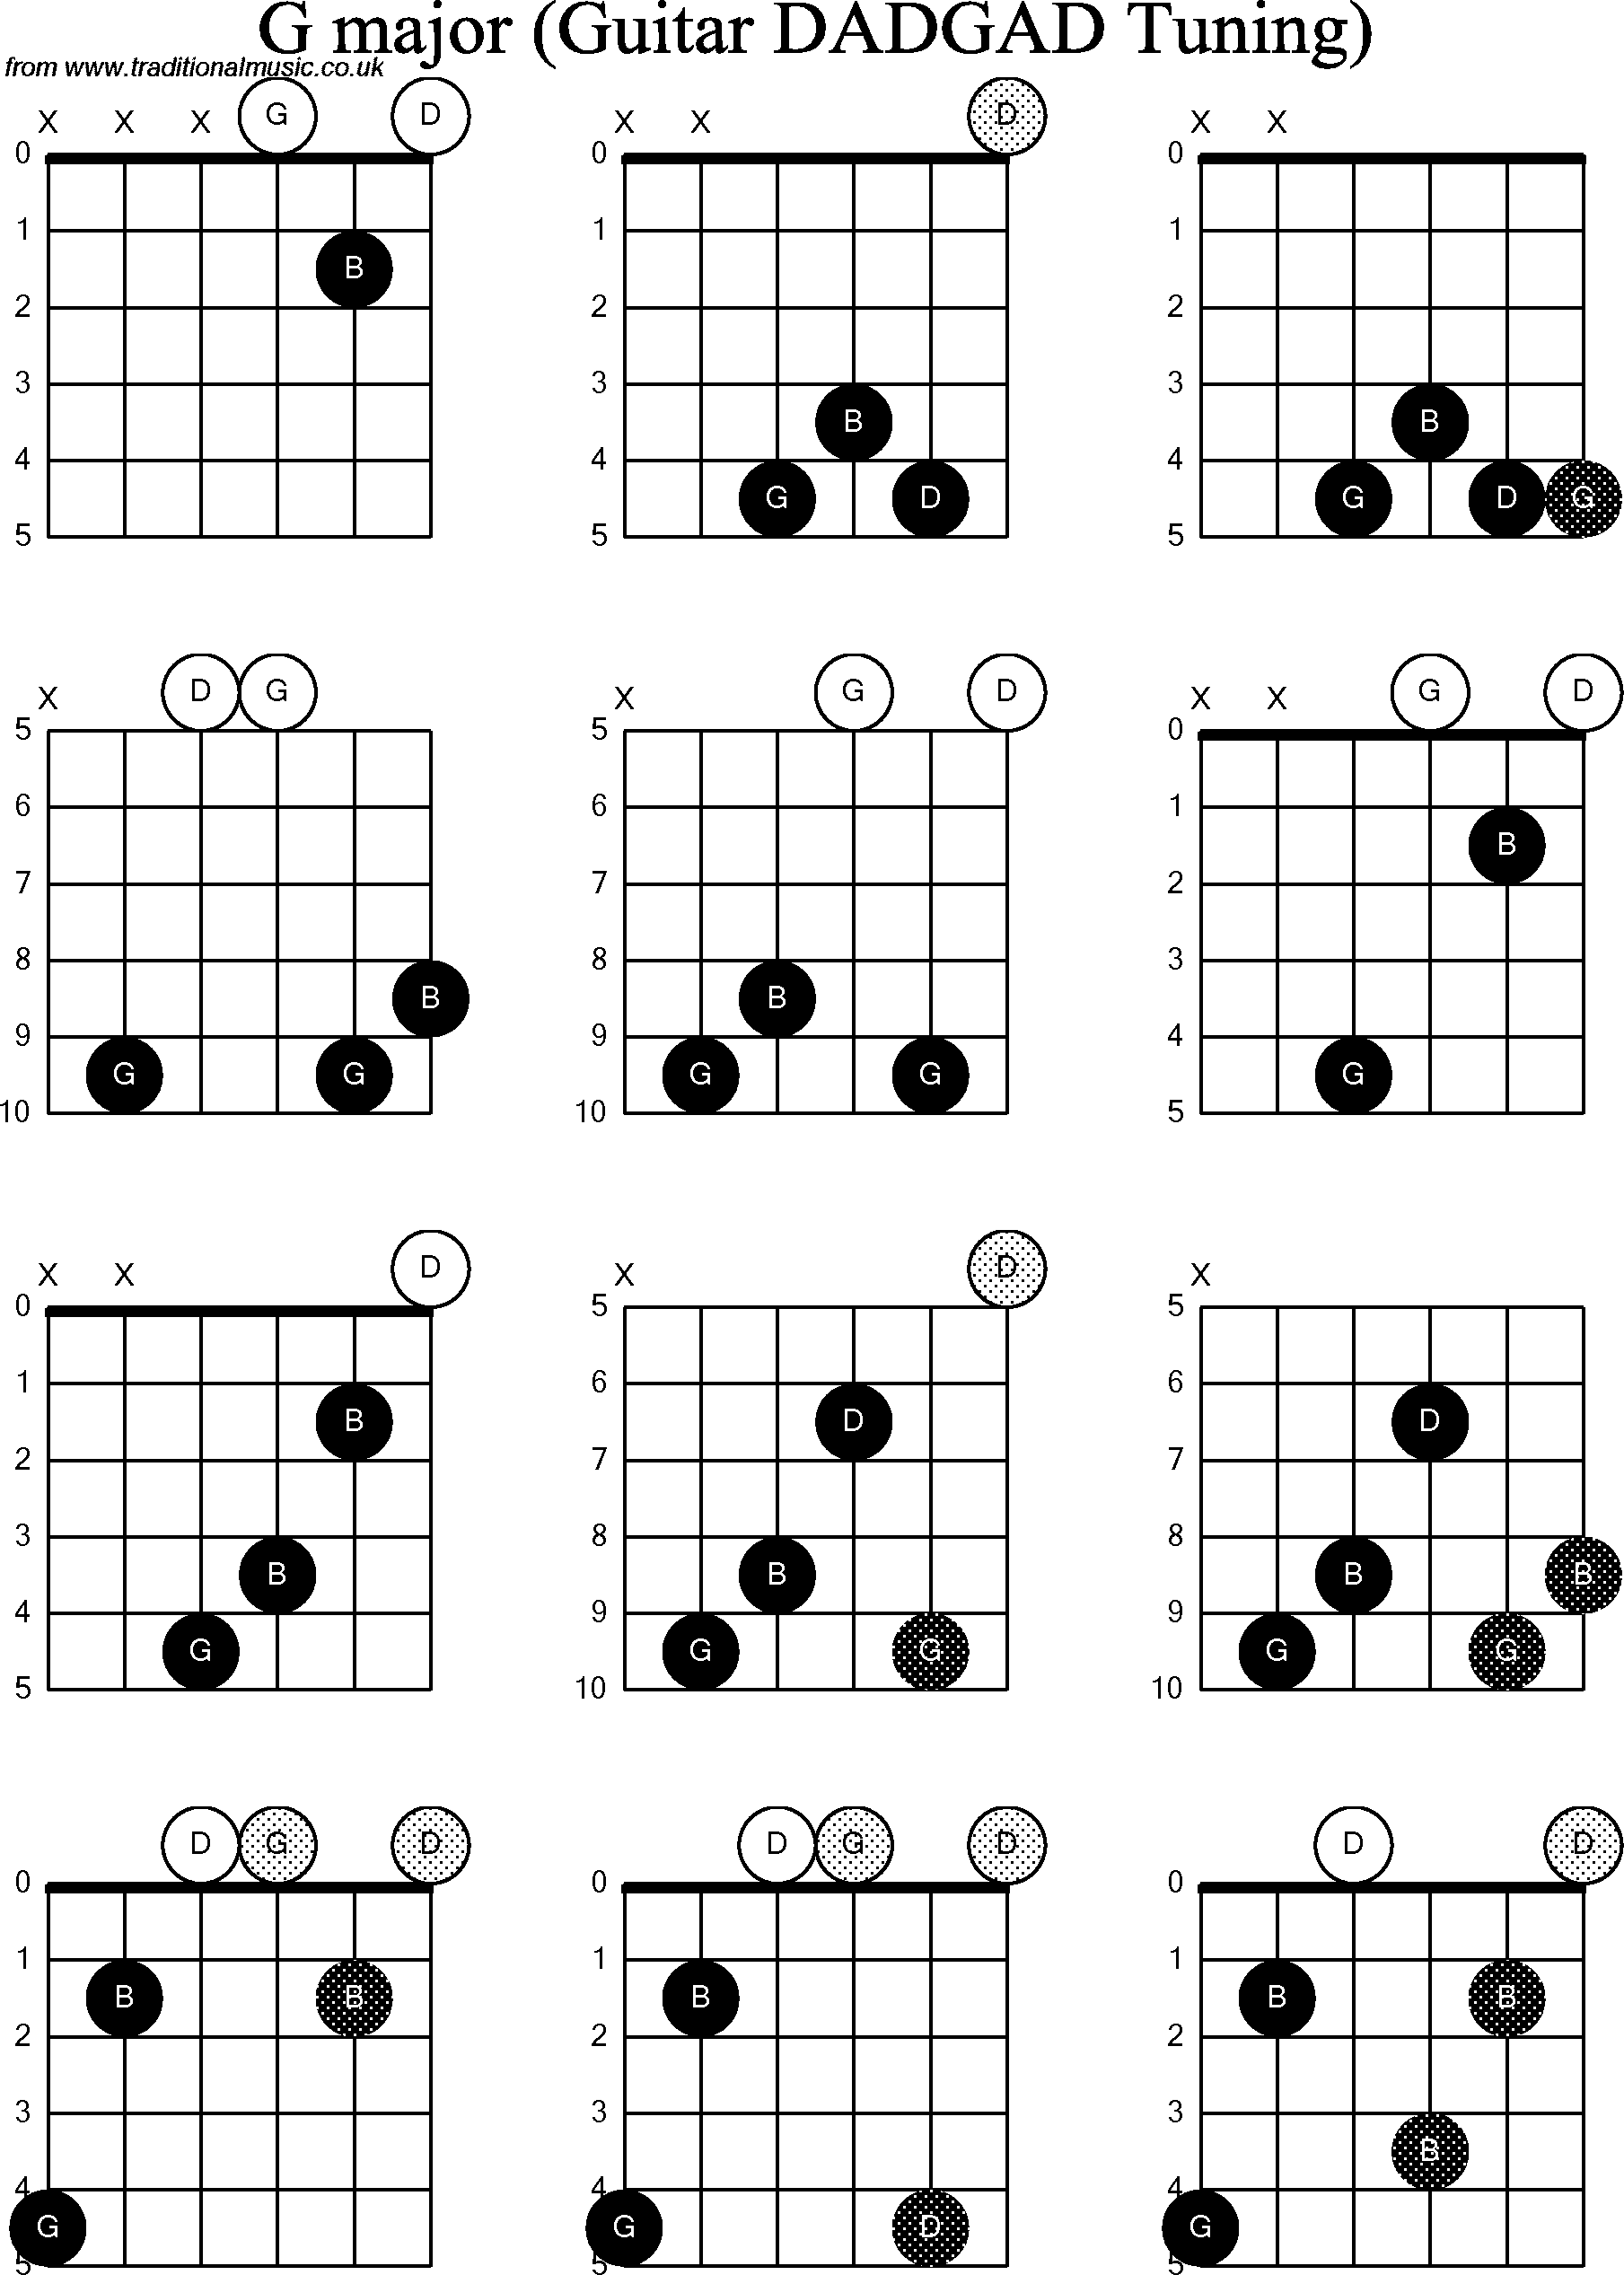 Chord diagrams d modal guitar dadgad g chord diagrams for d modal guitardadgad g hexwebz Choice Image